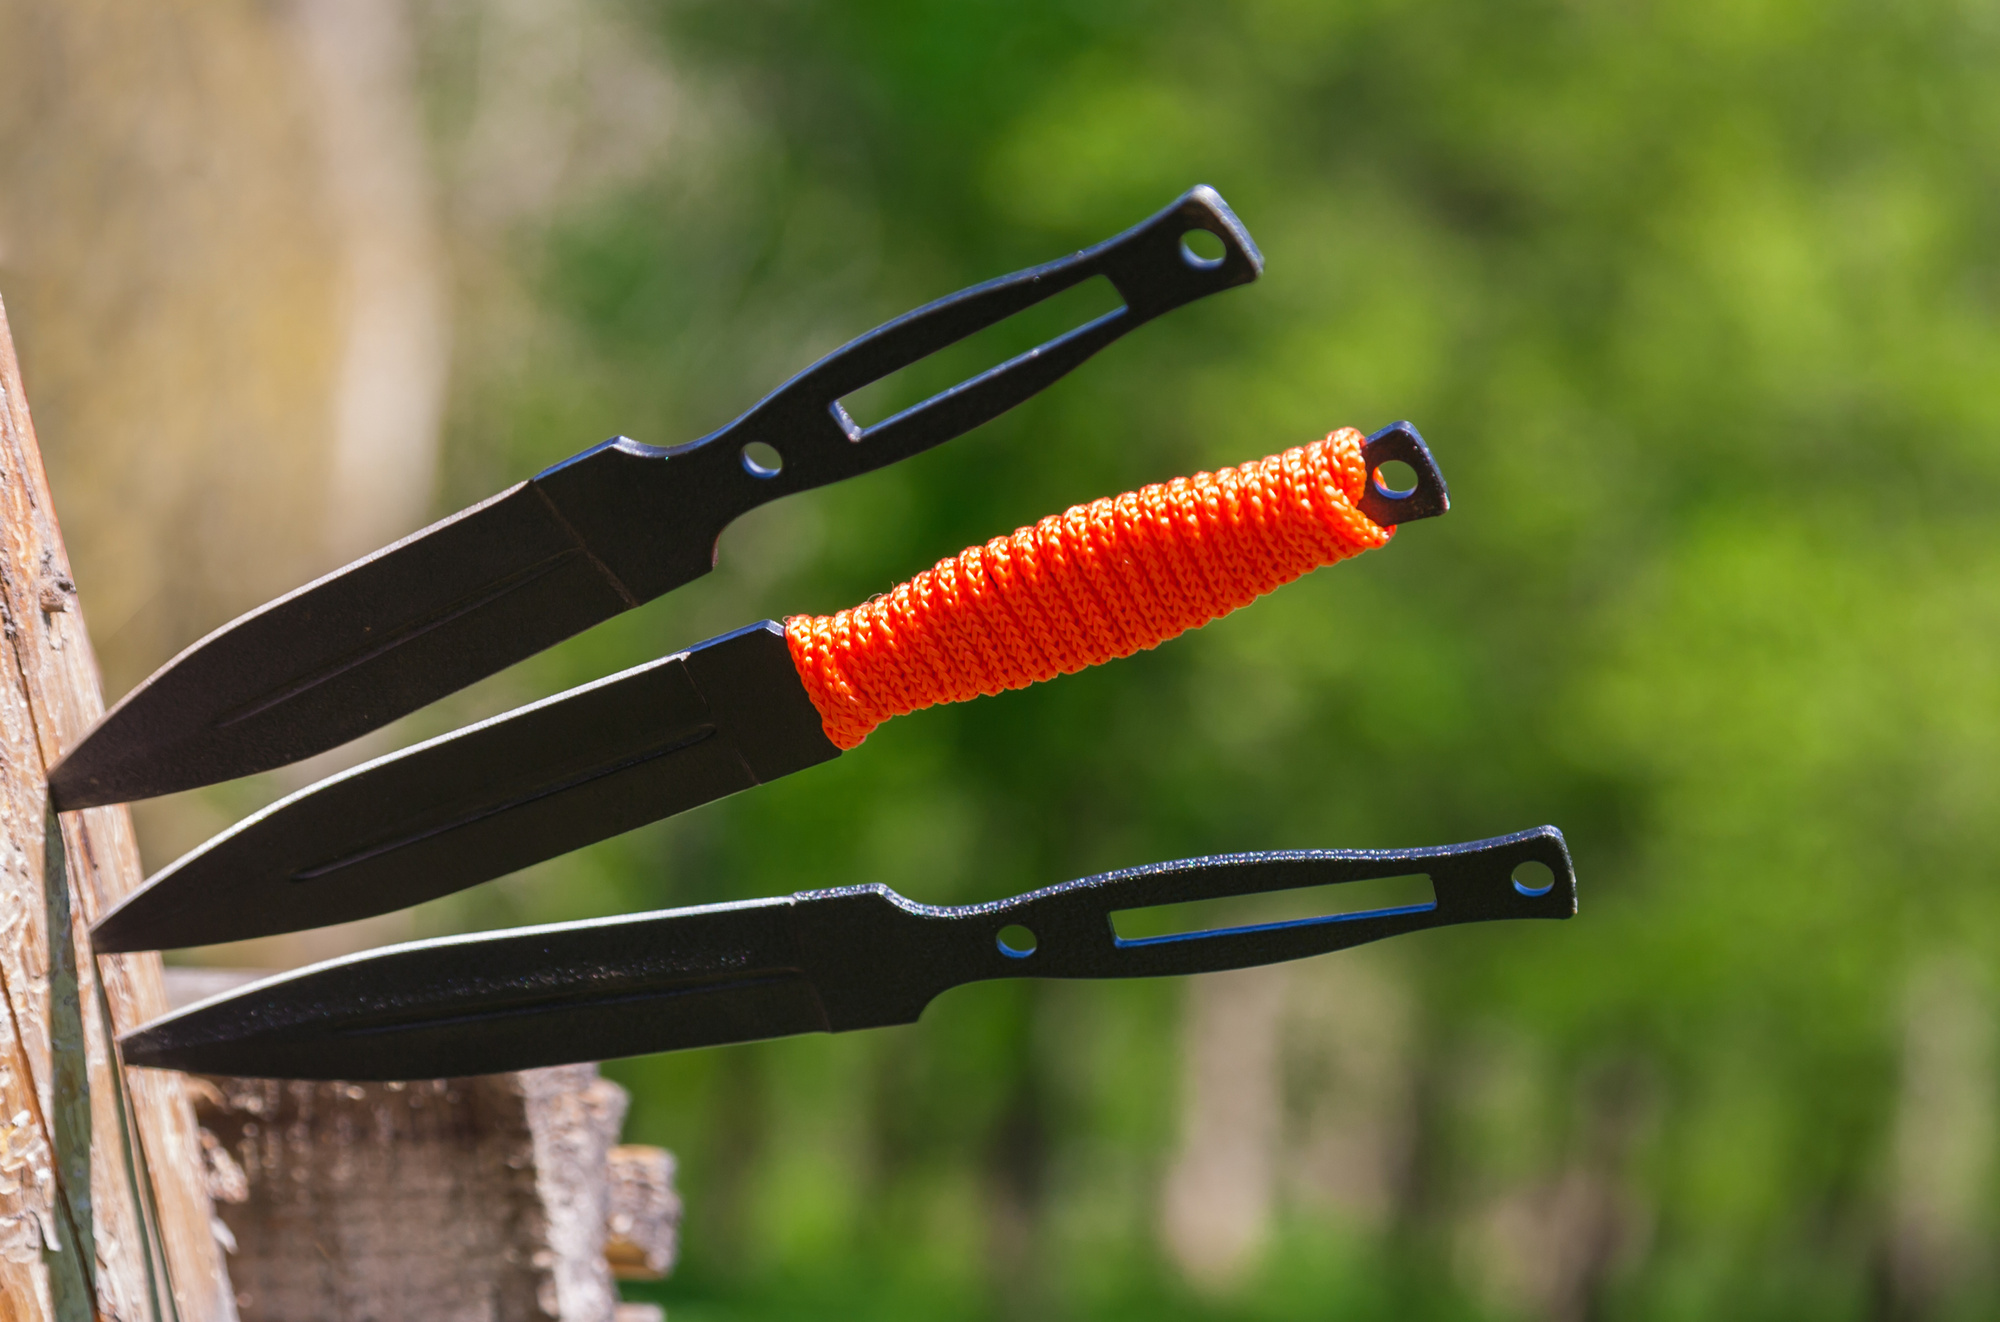 Beginner's Guide to Throwing Knives